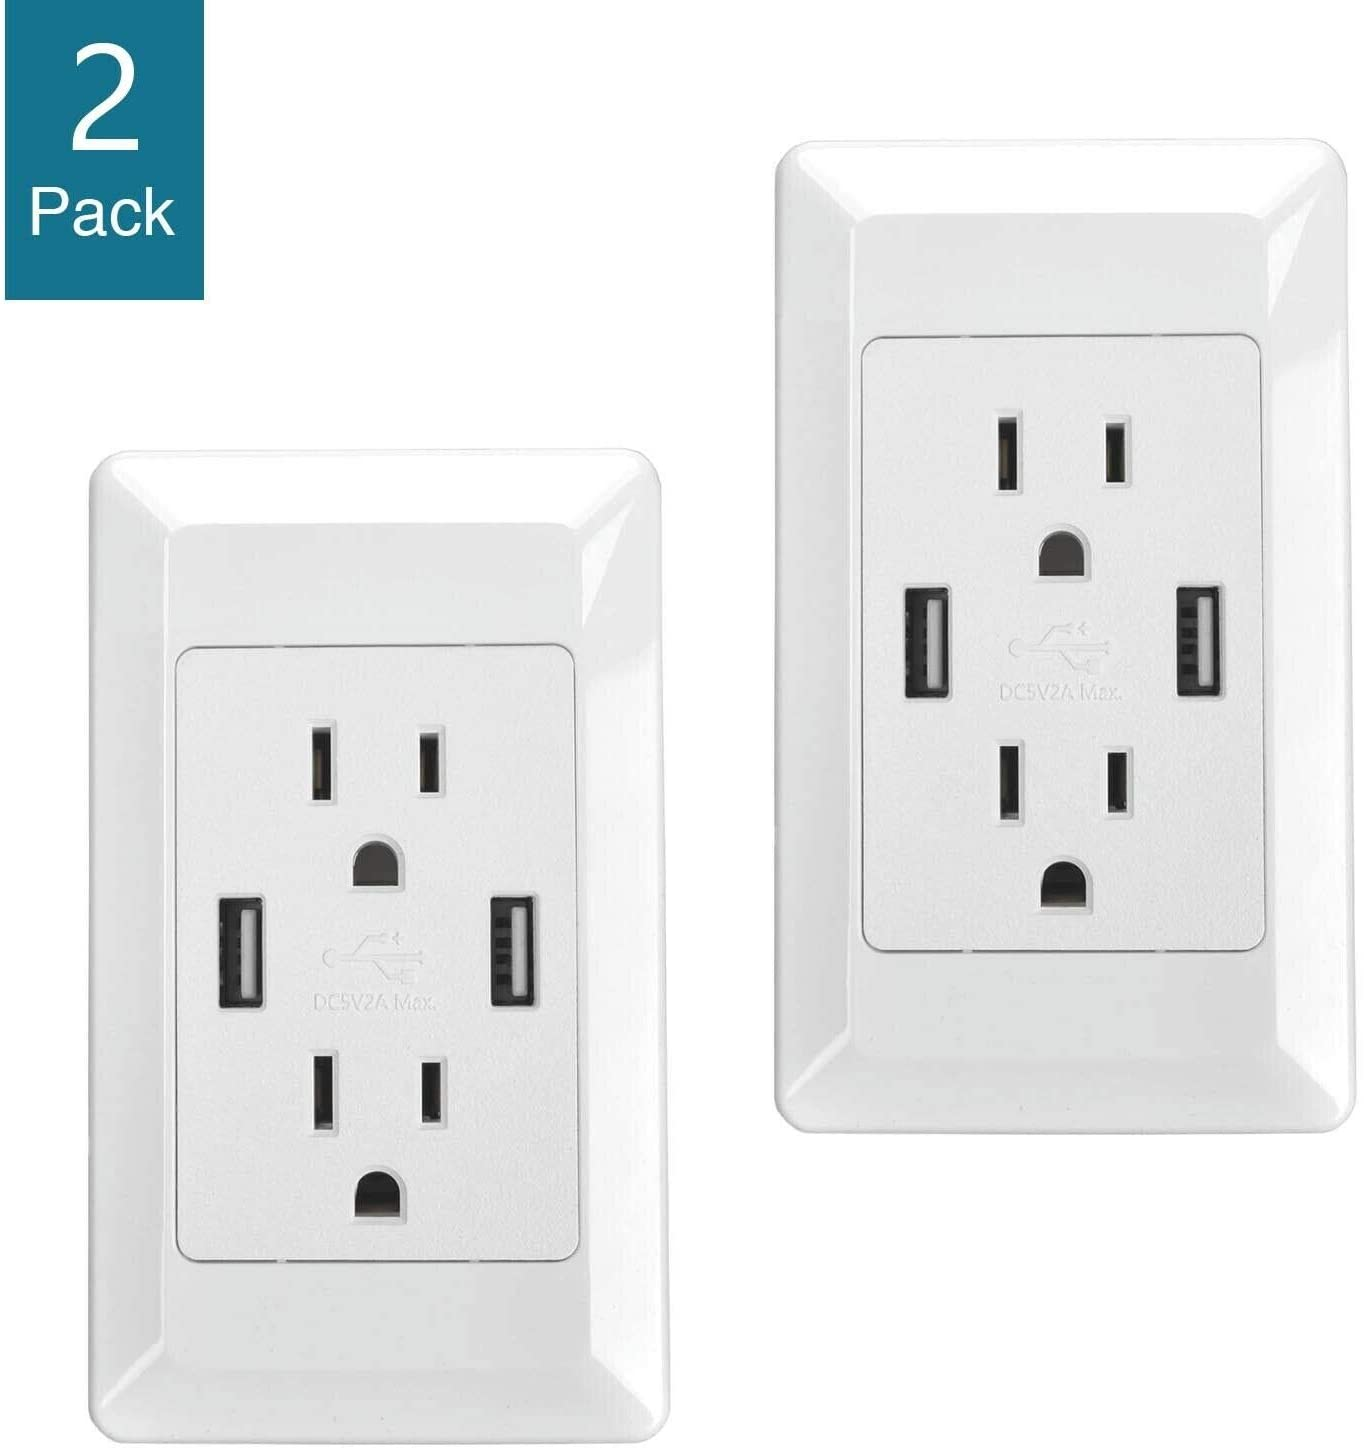 GREENCYCLE 2 Pack 2A Smart Dual USB Chrger Wall Plate Plug Outlet Socket Electrical Switch Outlet Chrging Receptacle White Adapter (ETL Listed)